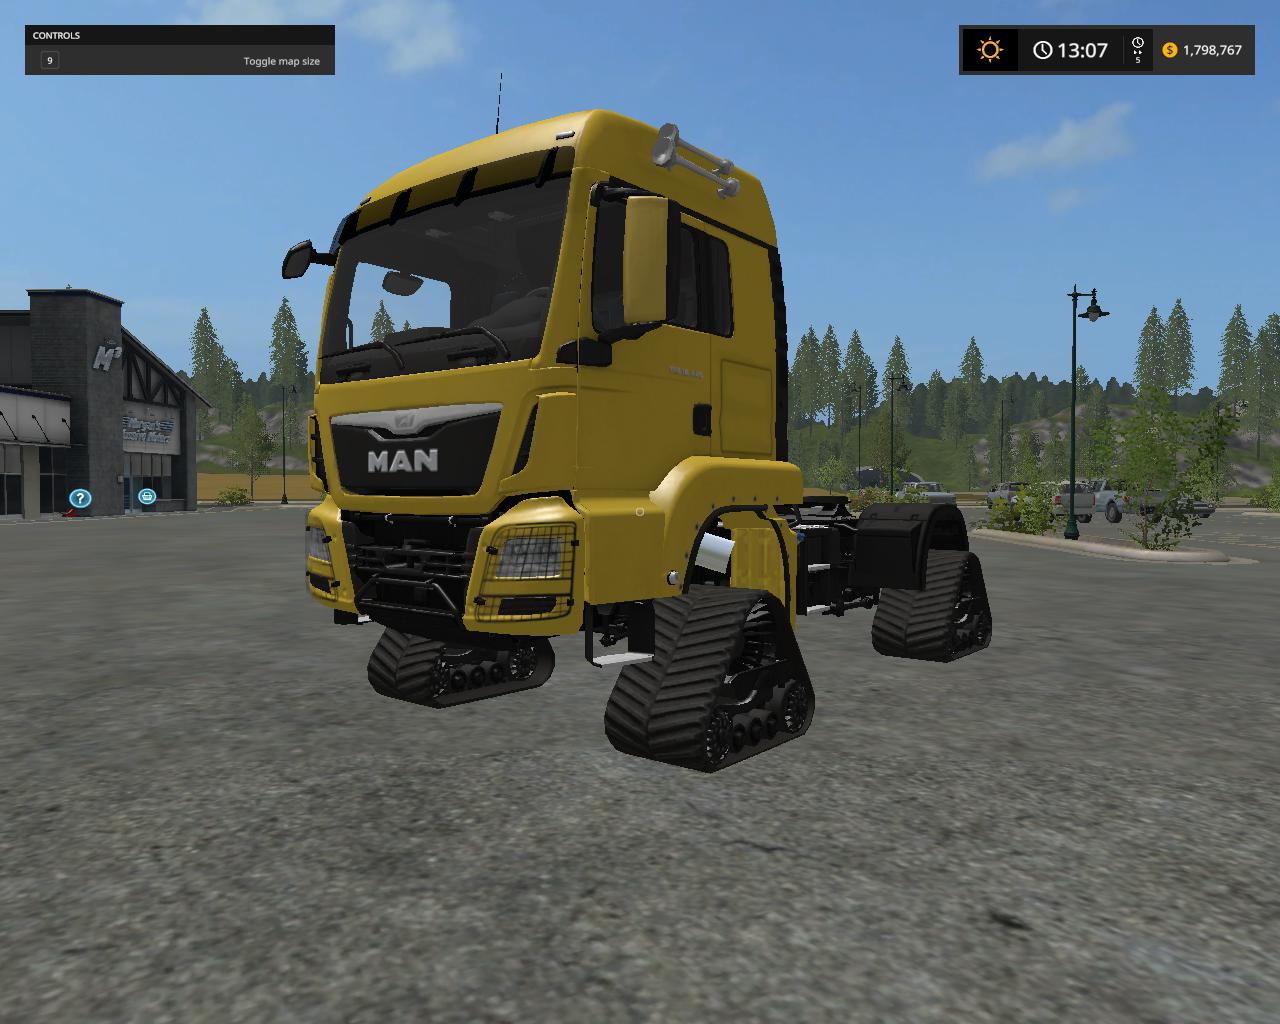 Man tracked semi v 1.1